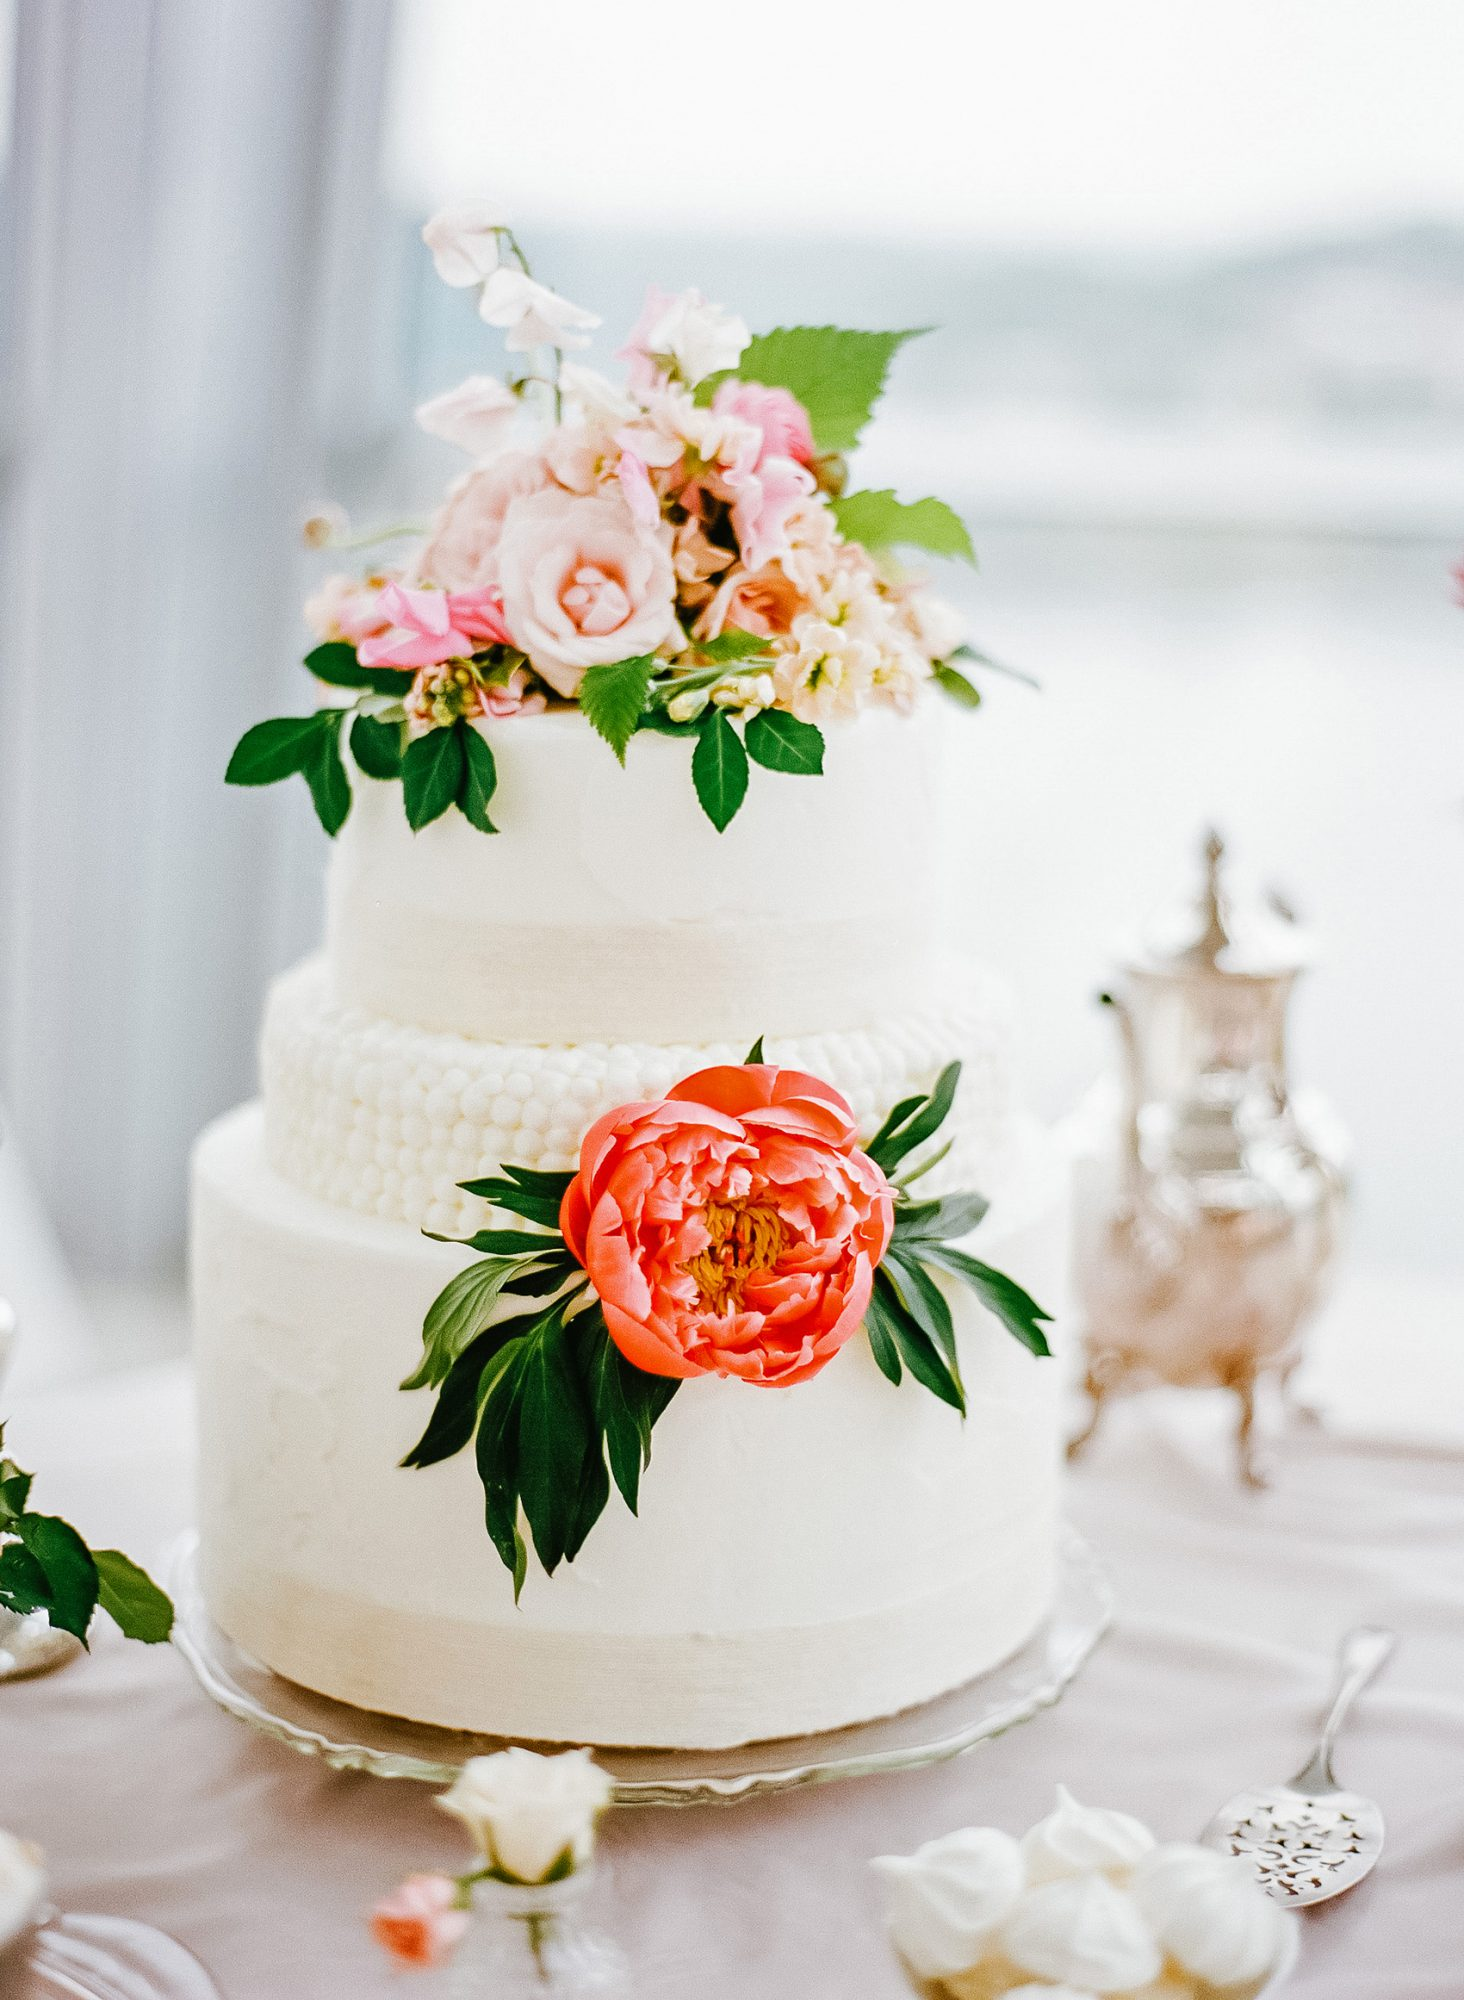 micro tier wedding cakes textured with orange and pink flowers